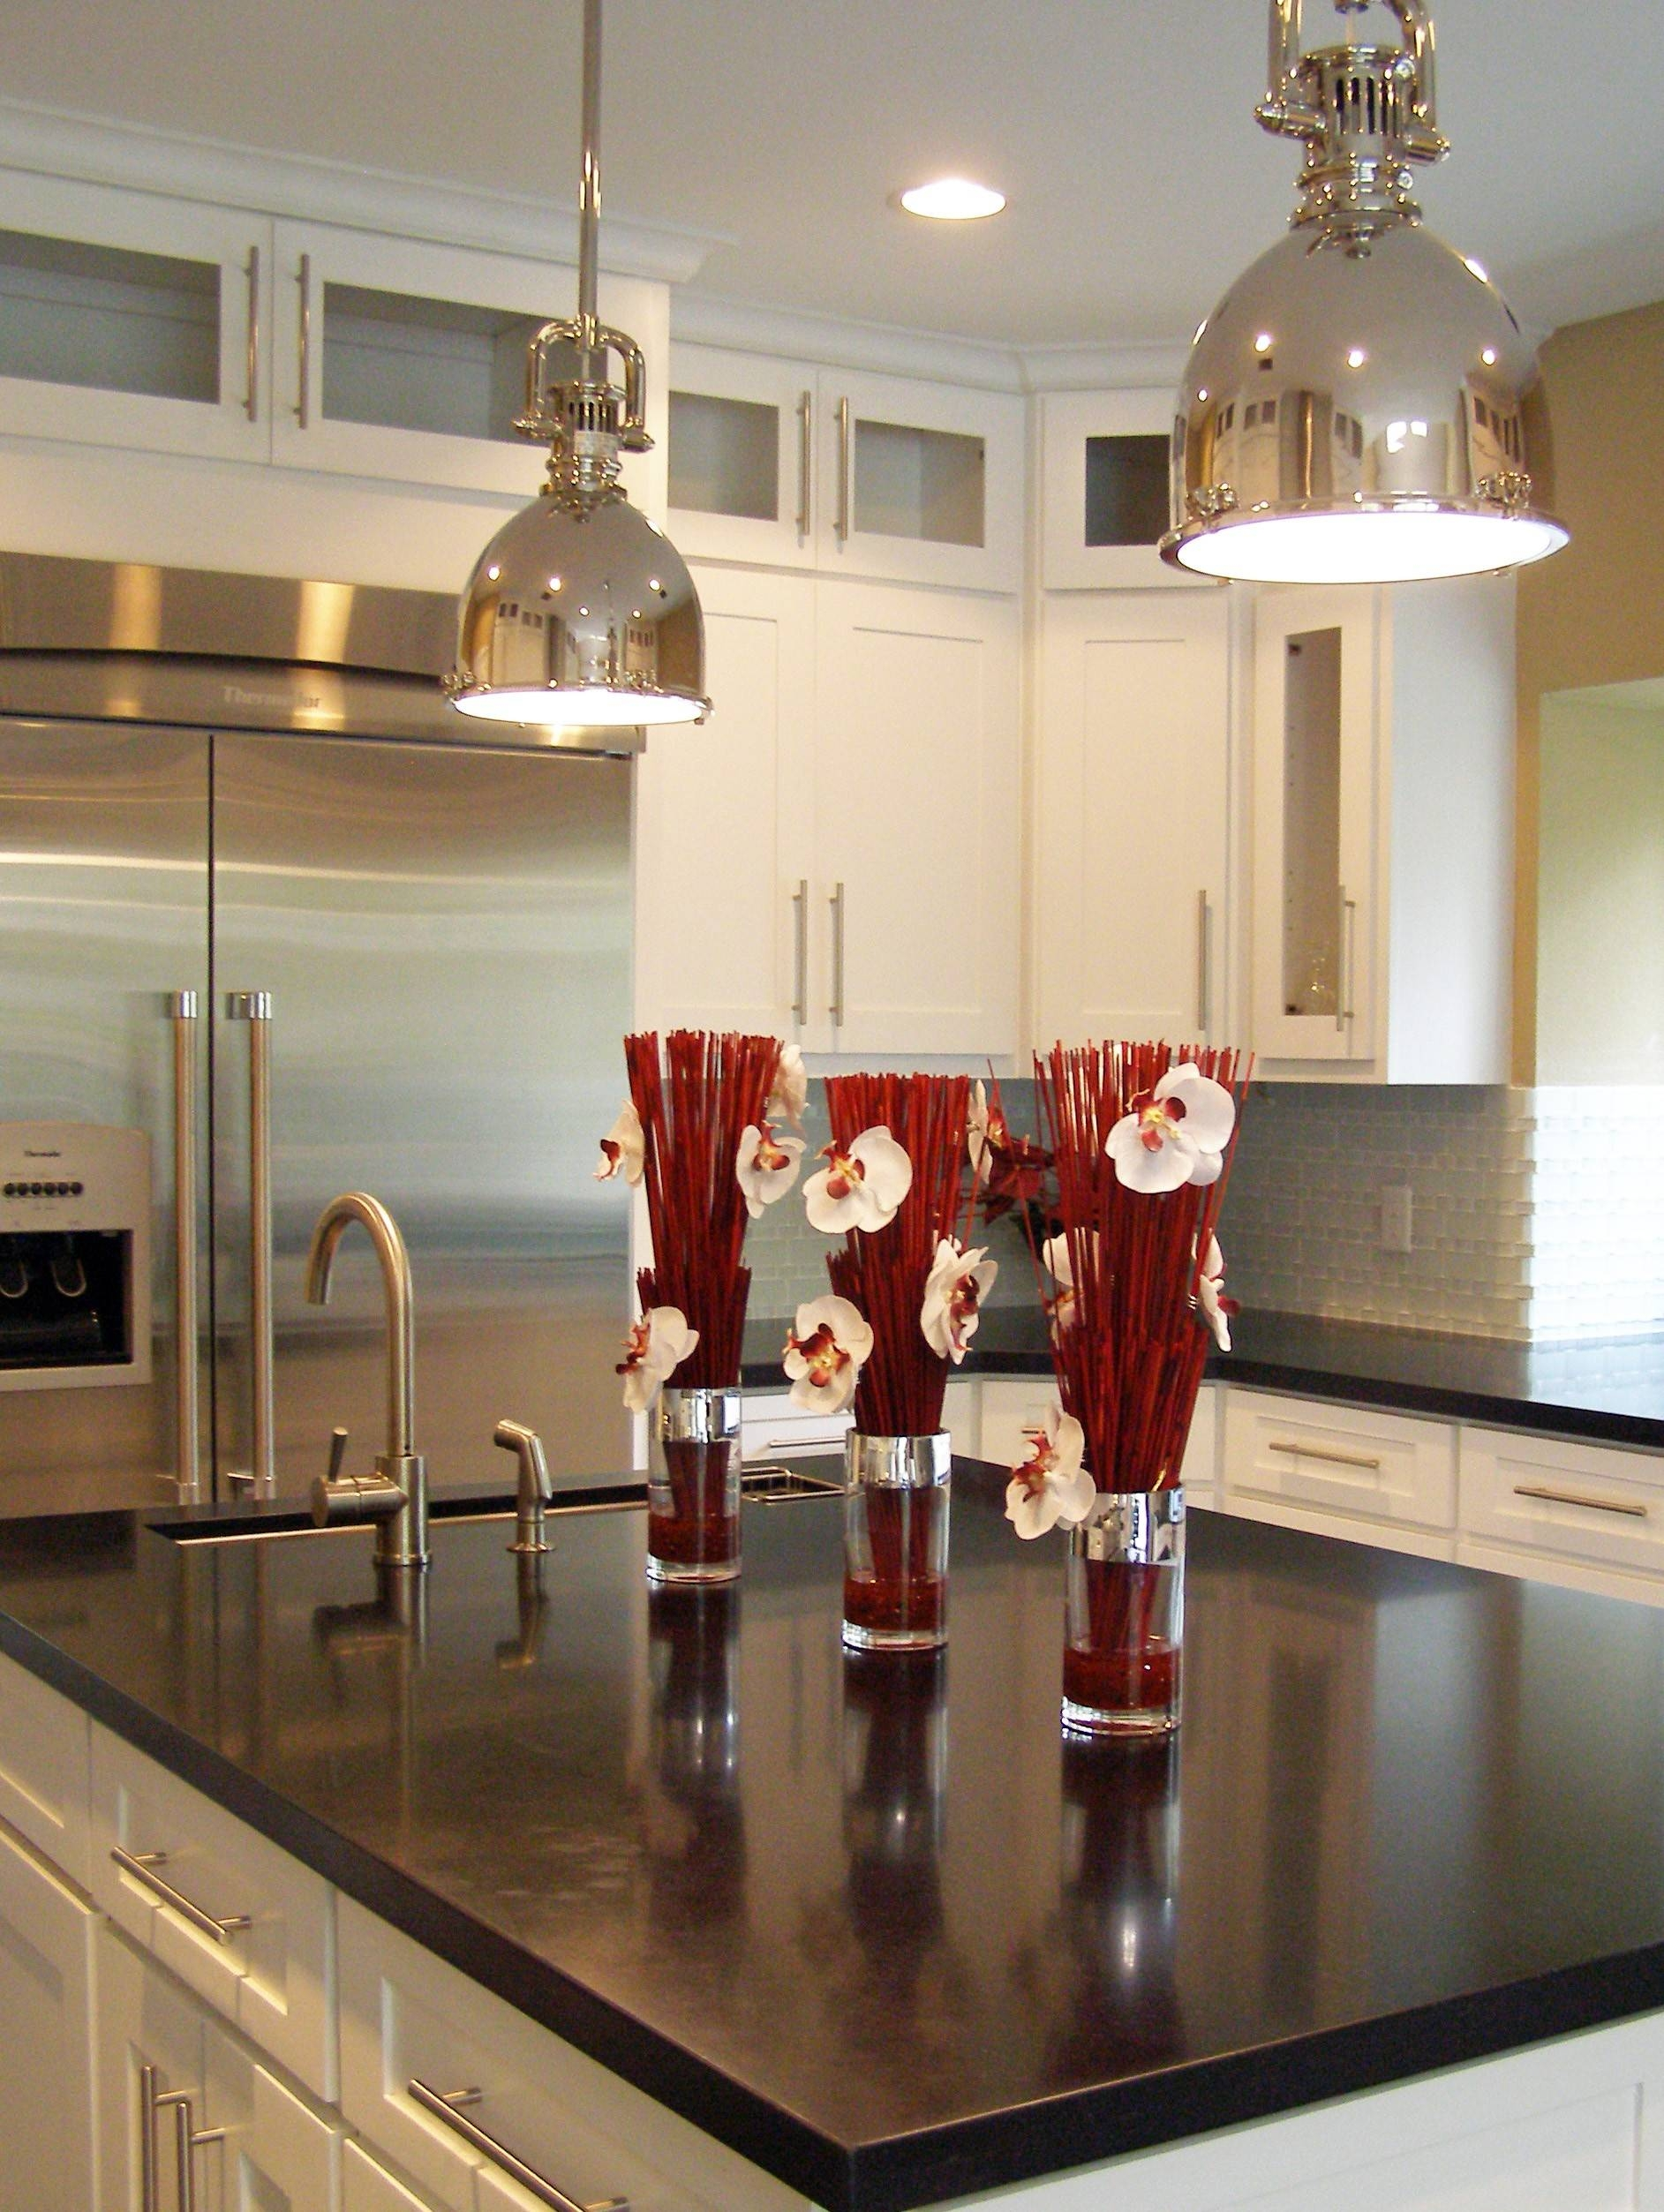 Furniture Appealing Pendant Lights For Kitchen Islands Wooden Intended For Stainless Steel Kitchen Pendant Lights (View 1 of 15)